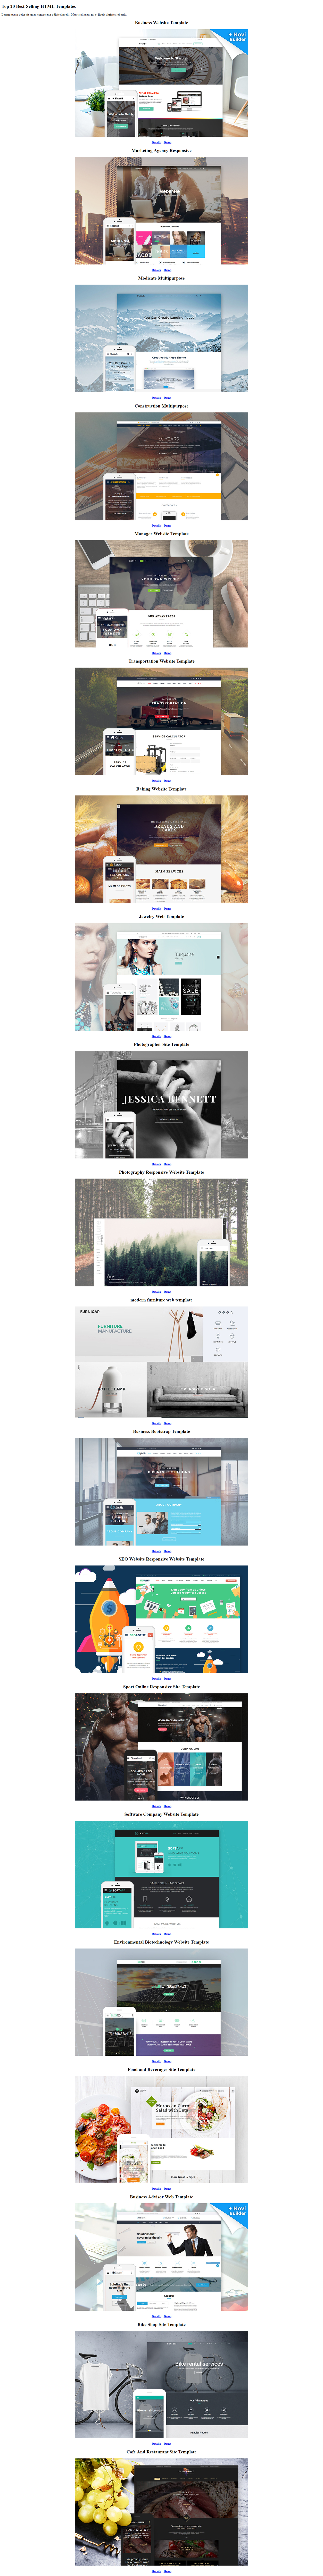 Top-20-Best-Selling-HTML-Templates